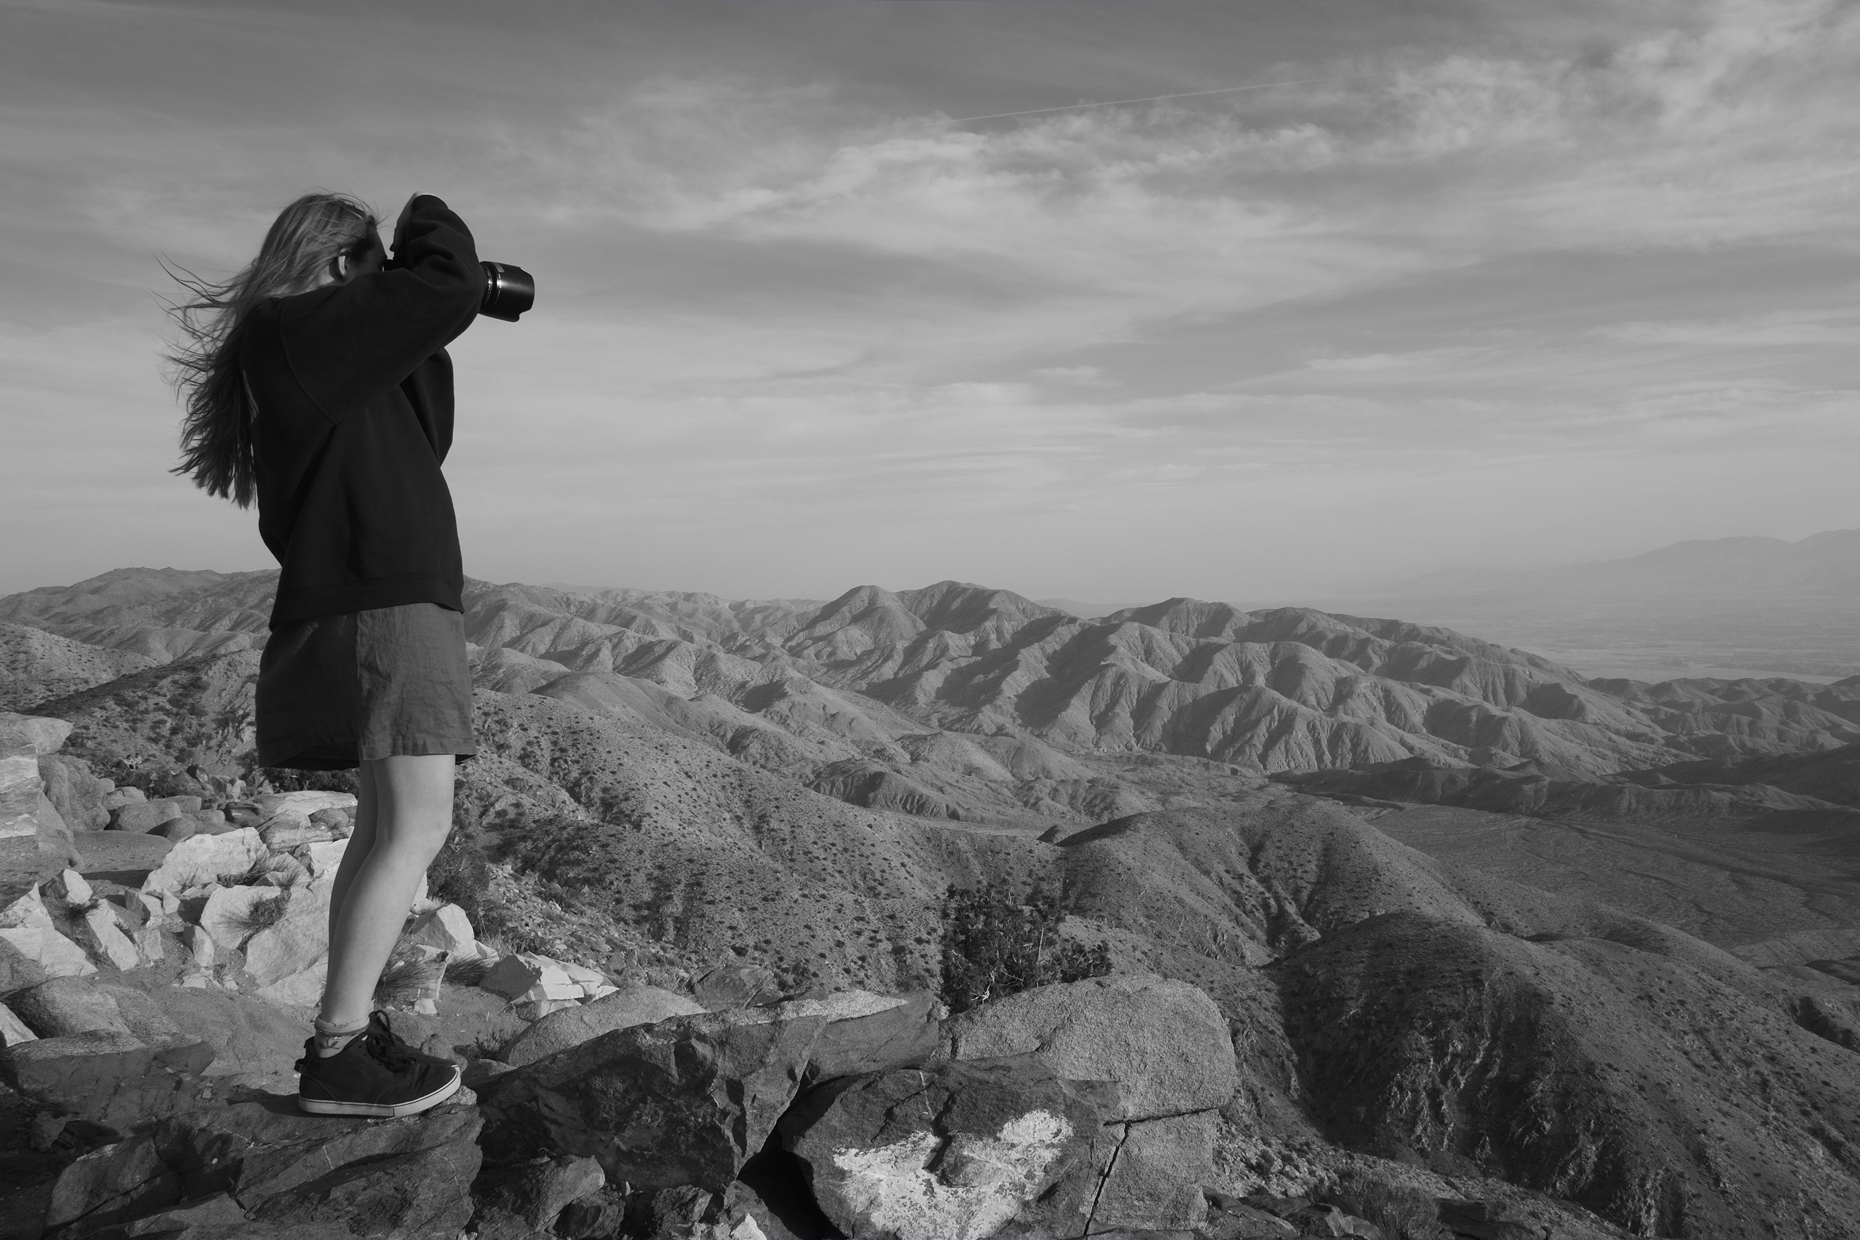 Lula photographing at Keys View Joshua Tree National Park. View of entire Coachella Valley, Palm Springs, San Andreas Fault all the way to The Salton Sea.